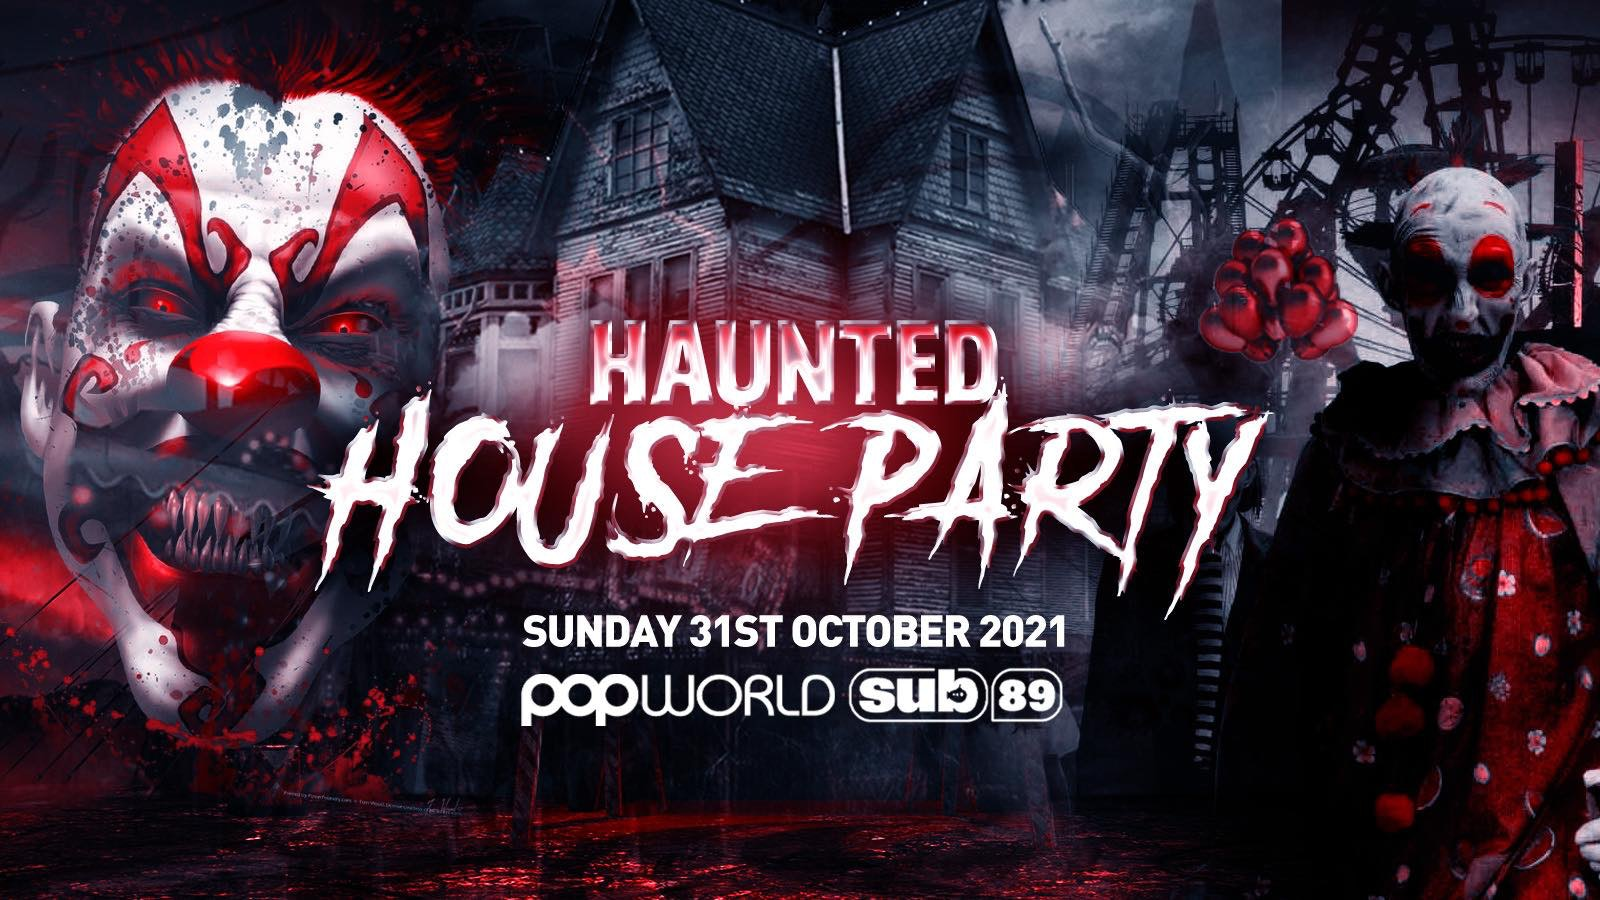 The Haunted House Party | Reading Halloween 2021 – First 100 Tickets ONLY £3!